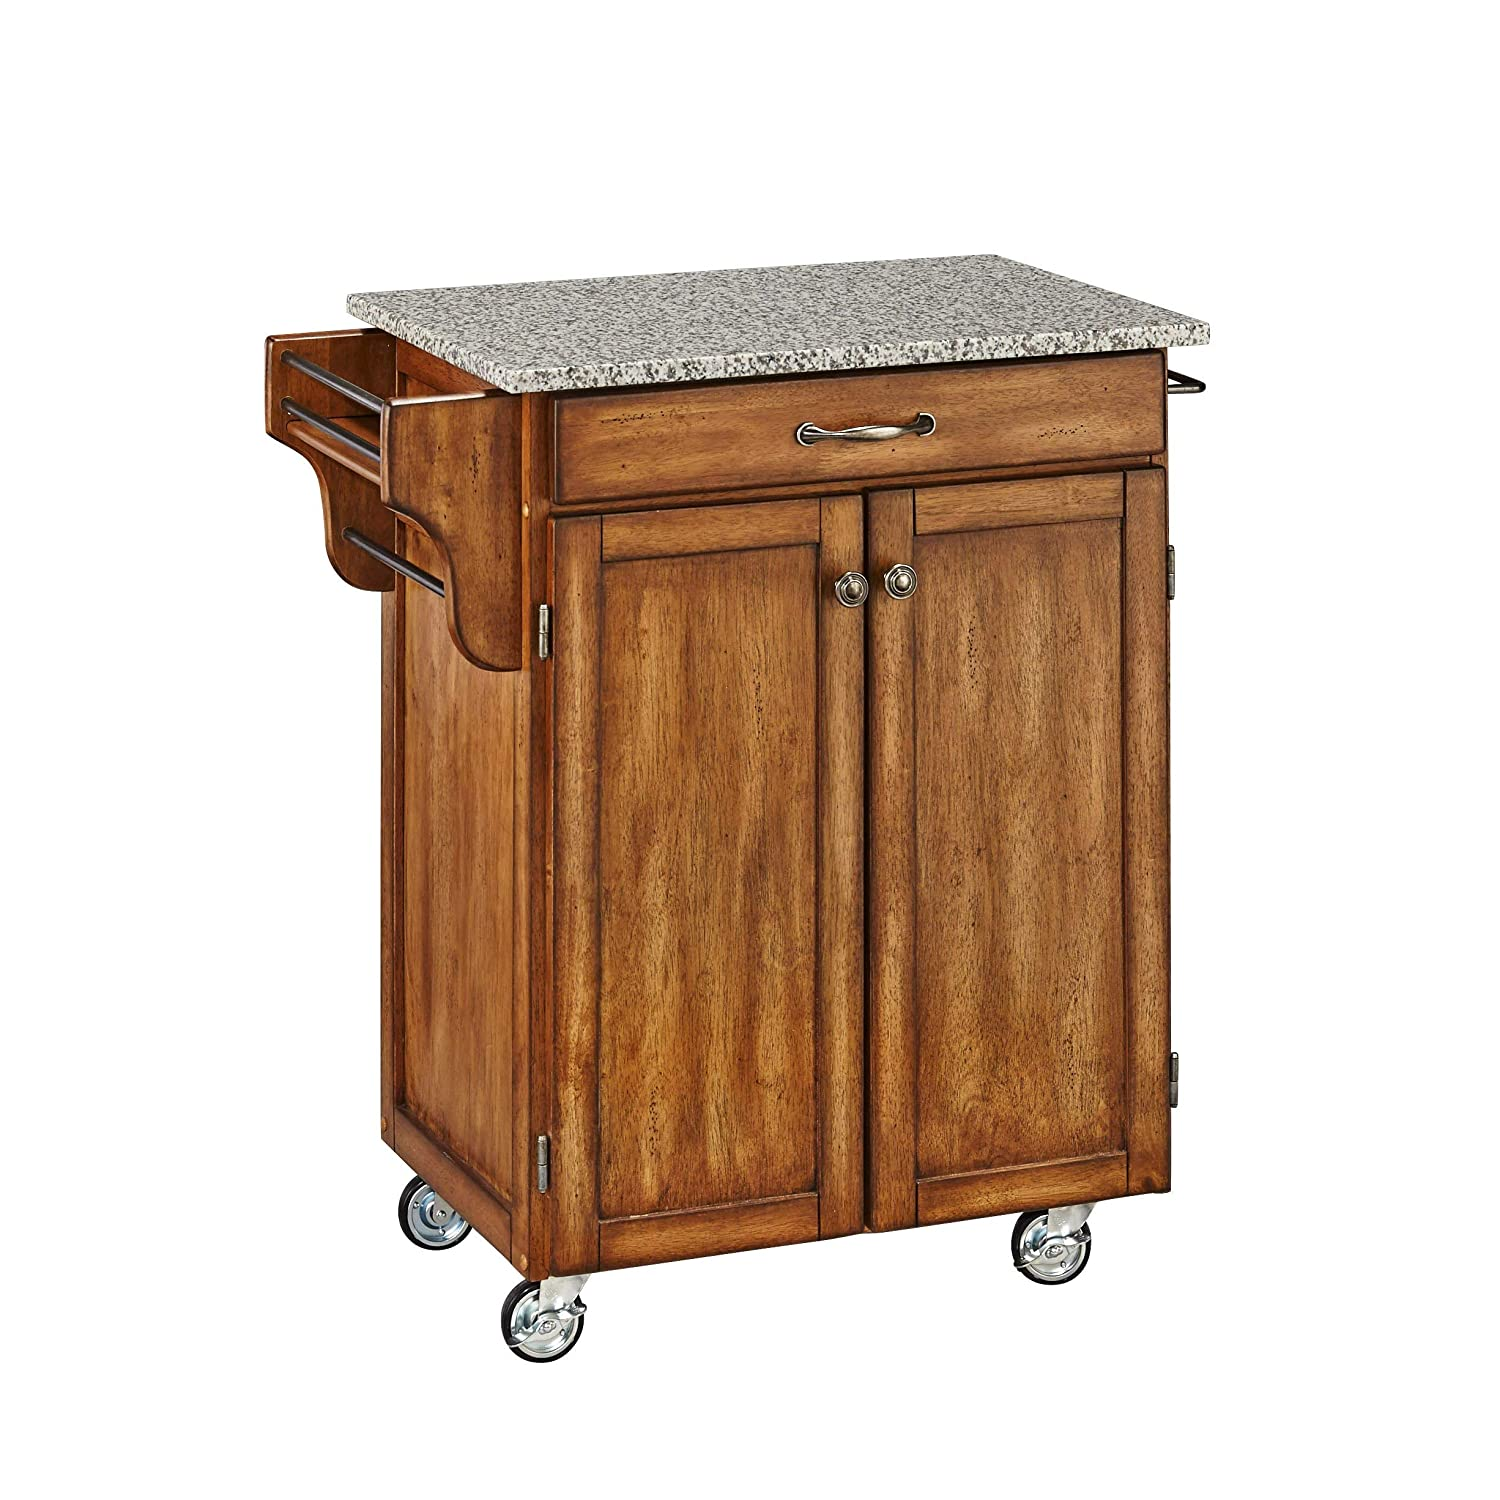 Create-a-Cart Warm Oak Kitchen Cart with Salt and Pepper Granite Top by Home Styles